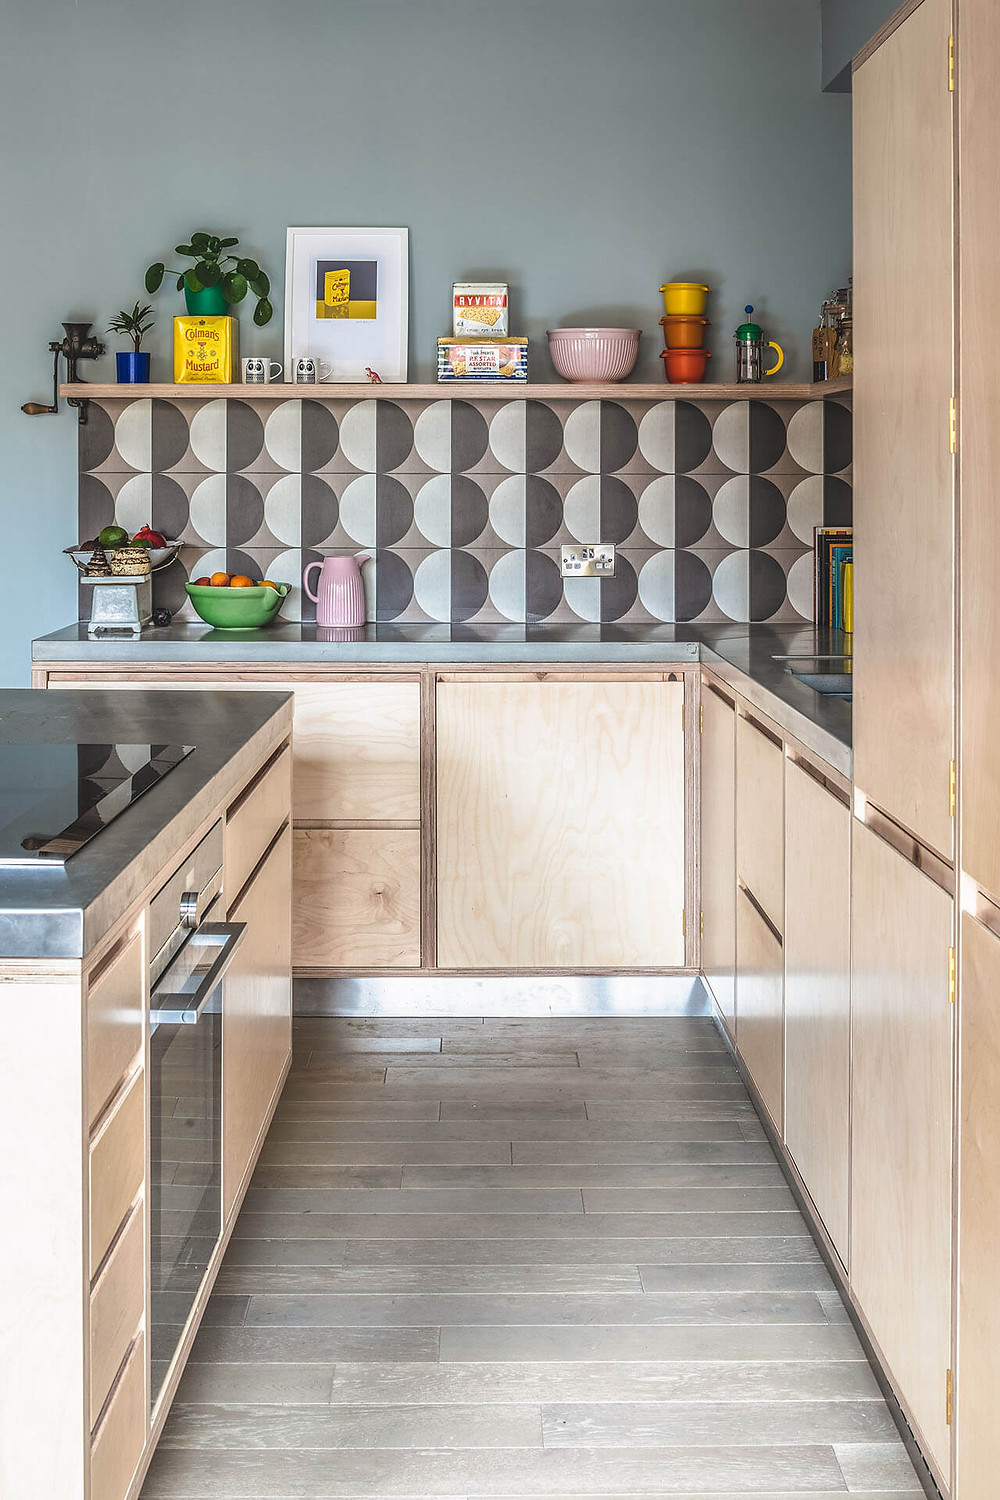 Sustainable plywood used in kitchen design.